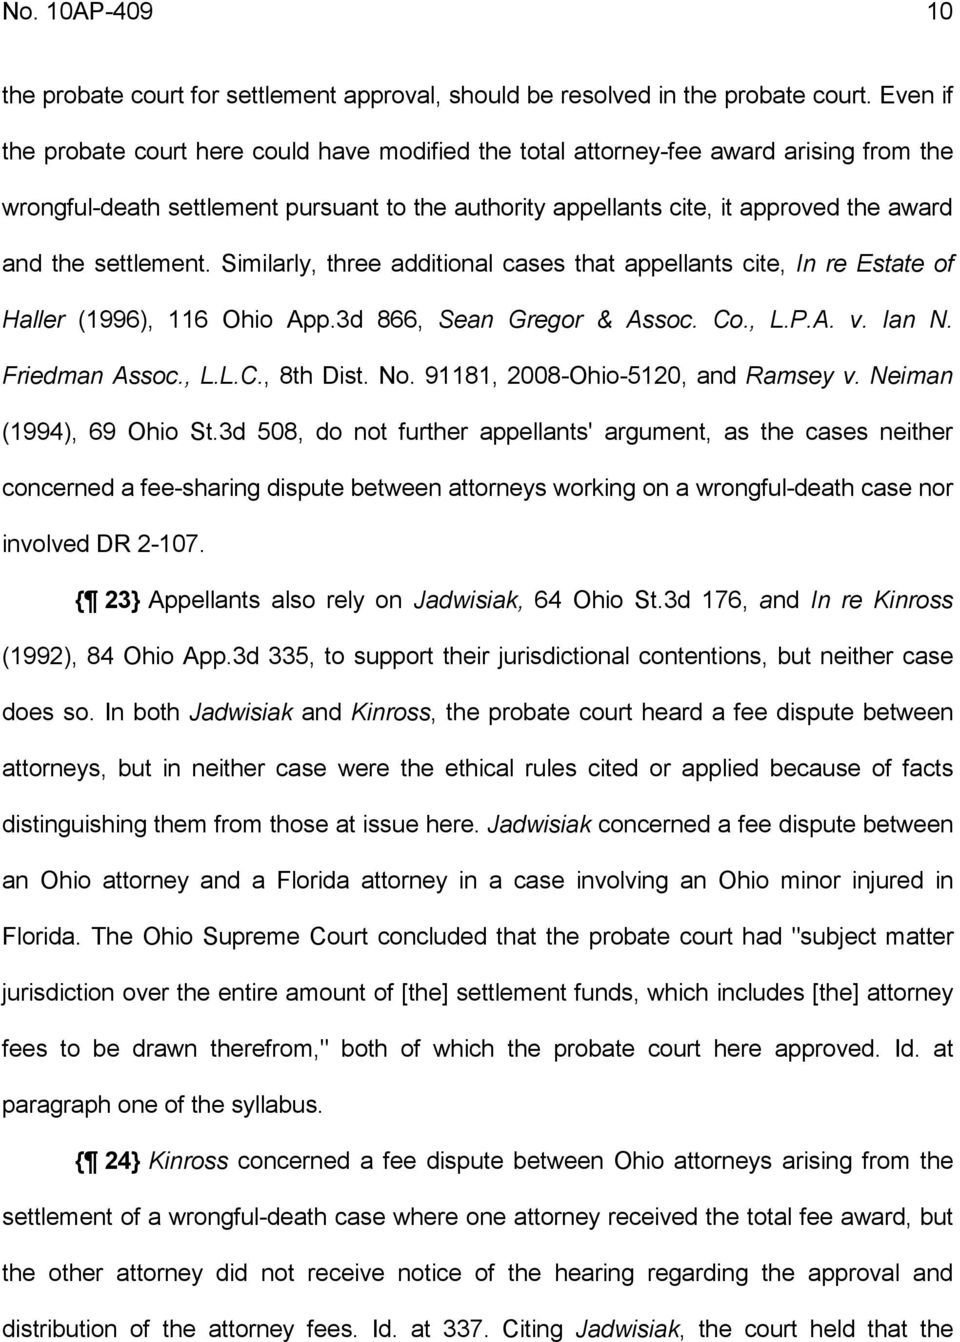 settlement. Similarly, three additional cases that appellants cite, In re Estate of Haller (1996), 116 Ohio App.3d 866, Sean Gregor & Assoc. Co., L.P.A. v. Ian N. Friedman Assoc., L.L.C., 8th Dist.